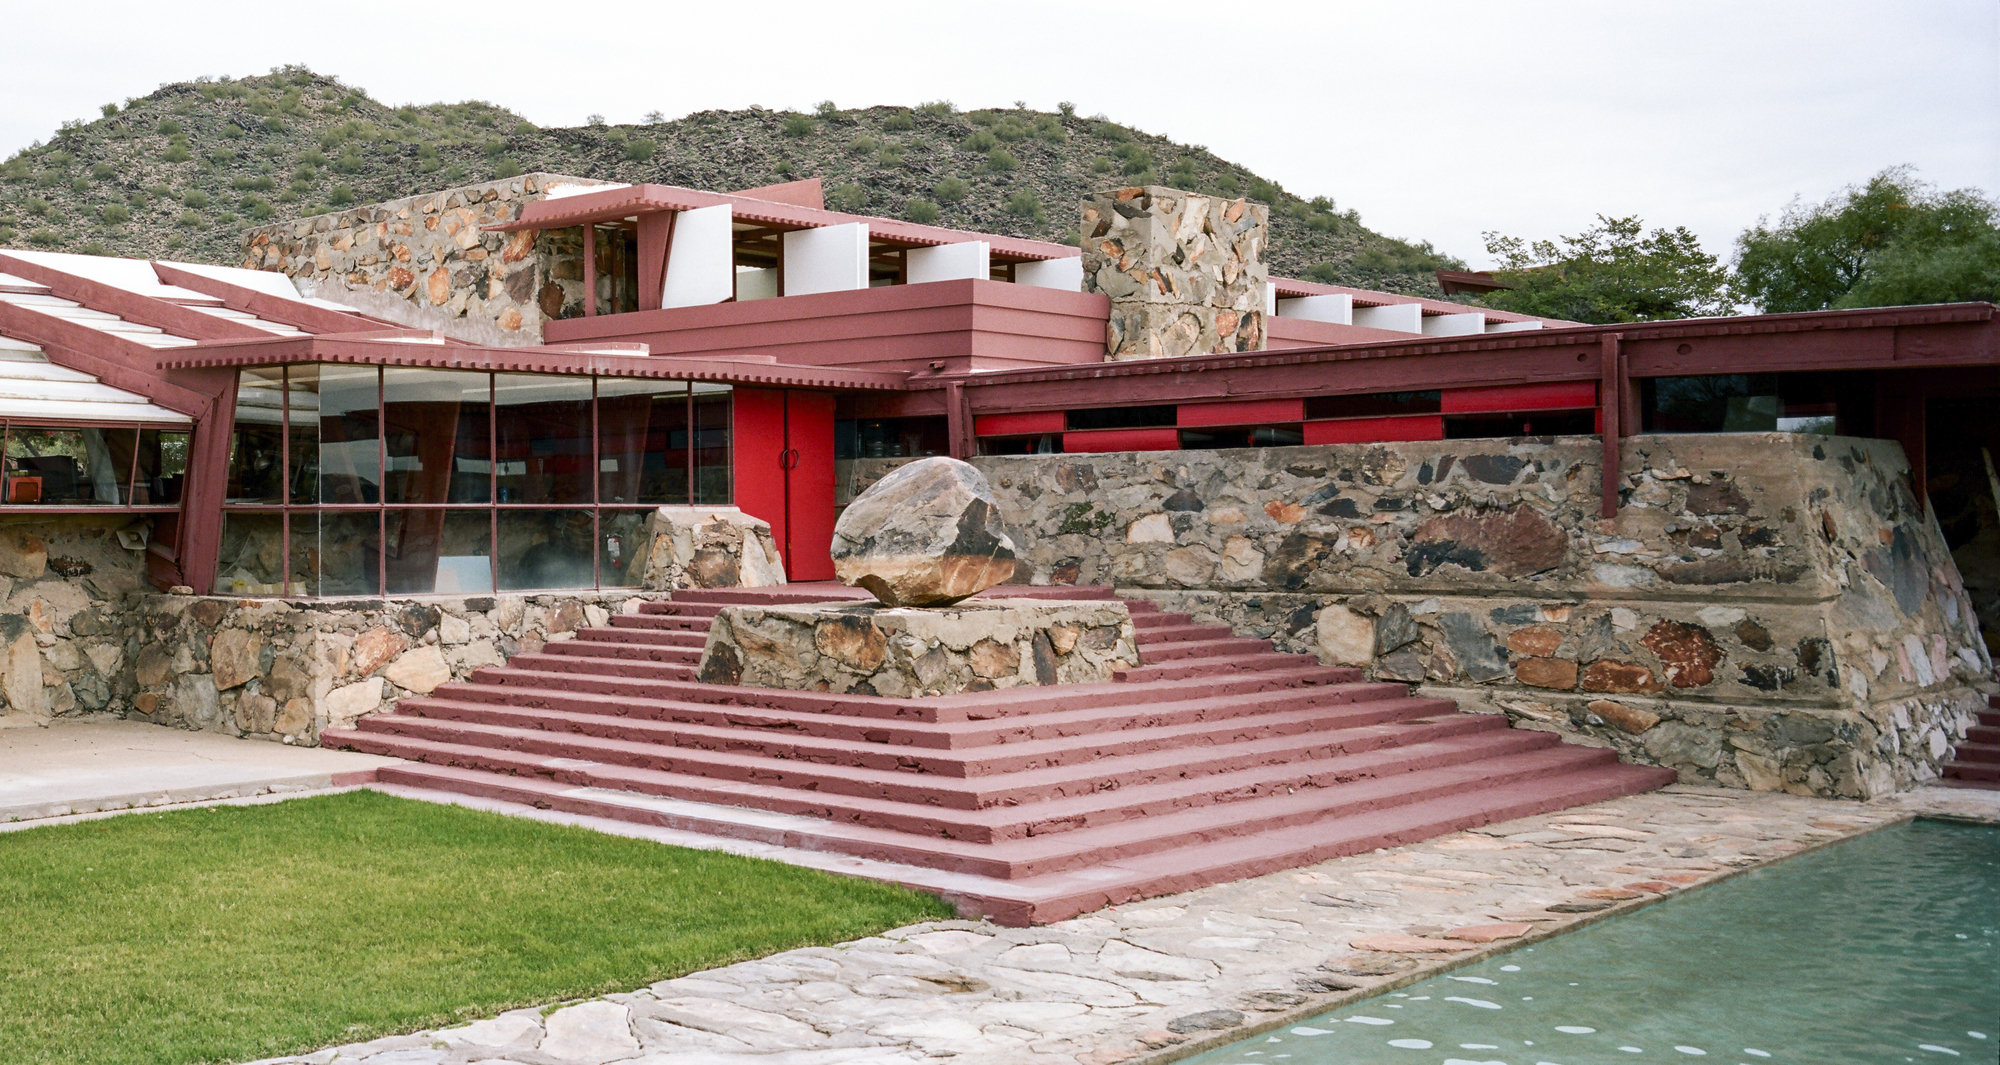 Frank lloyd wright school of architecture will maintain - Frank lloyd wright architecture ...